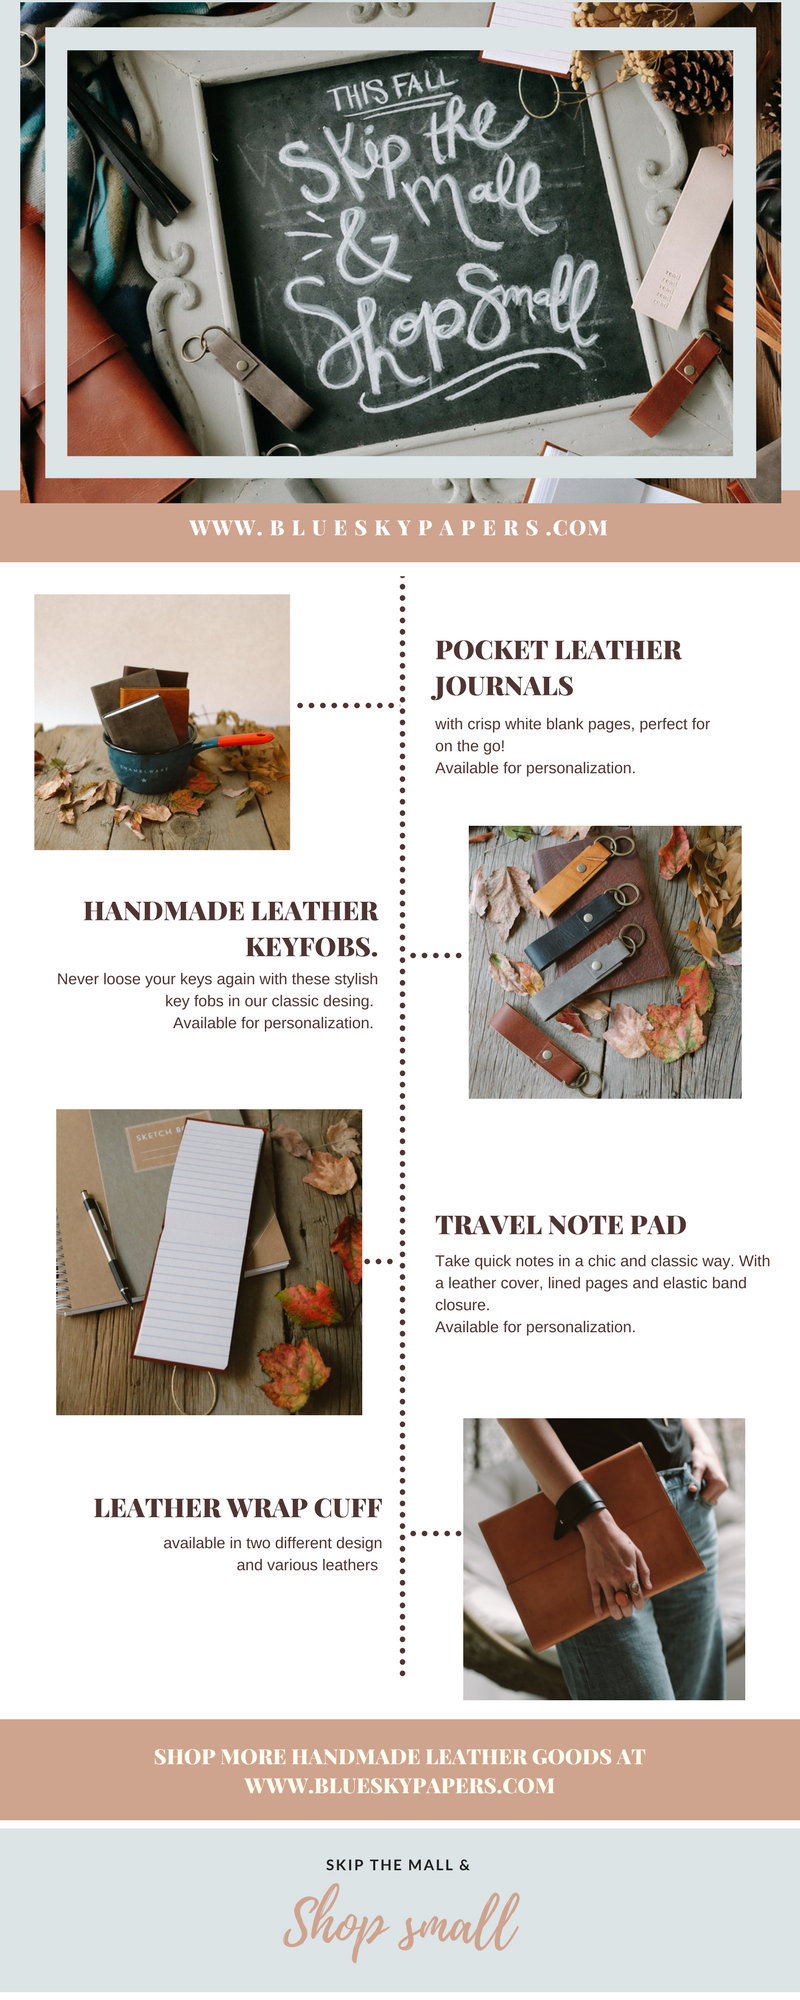 New-Leather-Handmade-Goods_Blue-Sky-Papers